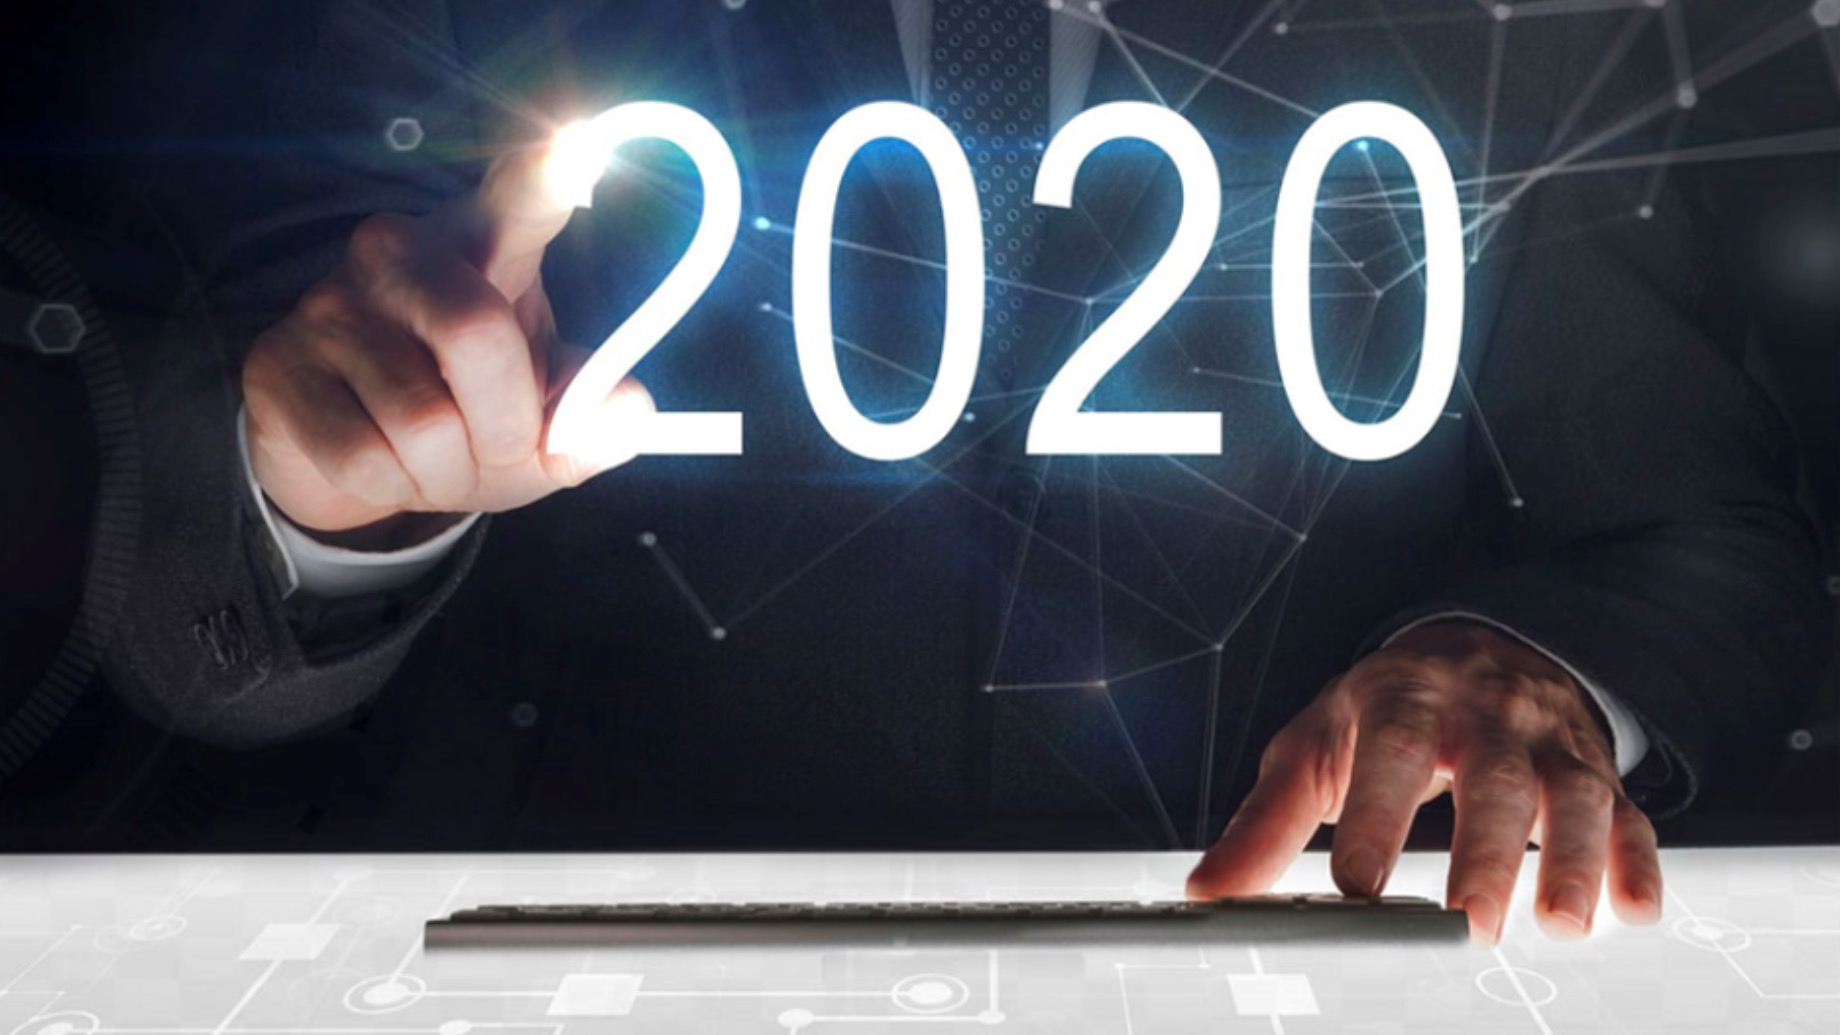 Technologies of 2020 - Everything You Need to Know